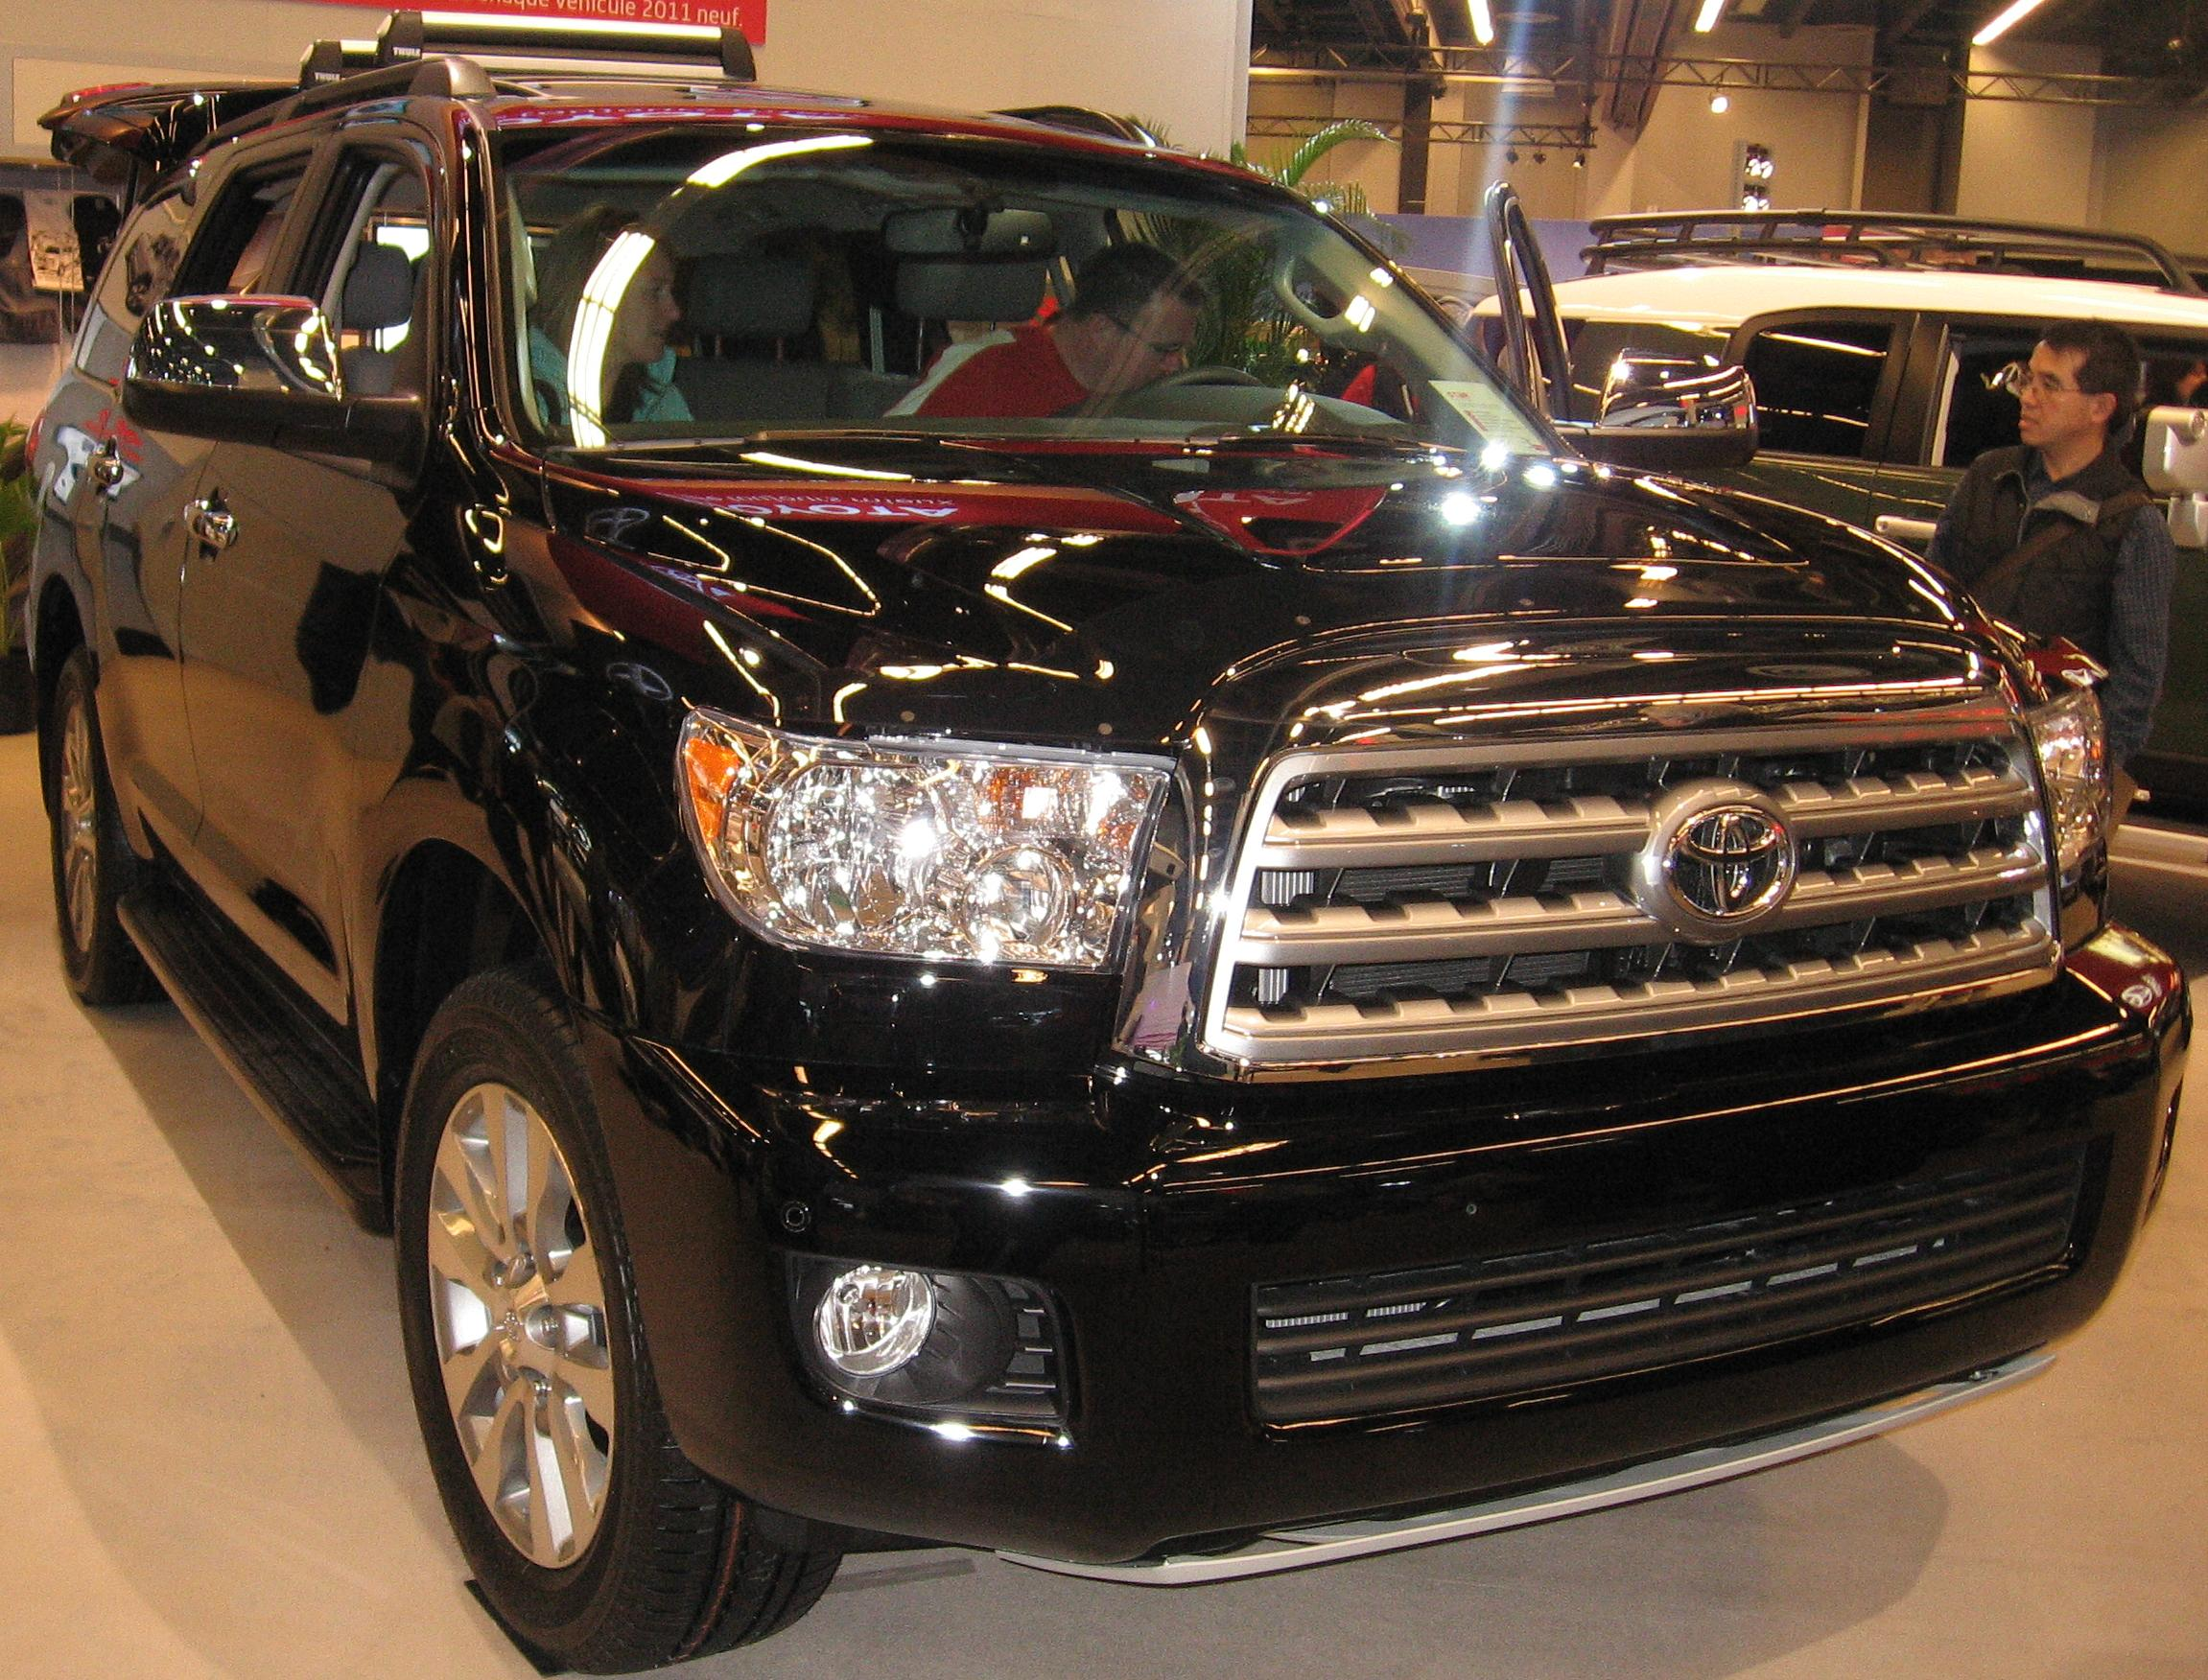 the cars limited to miles new sequoia or more last toyota most likely top